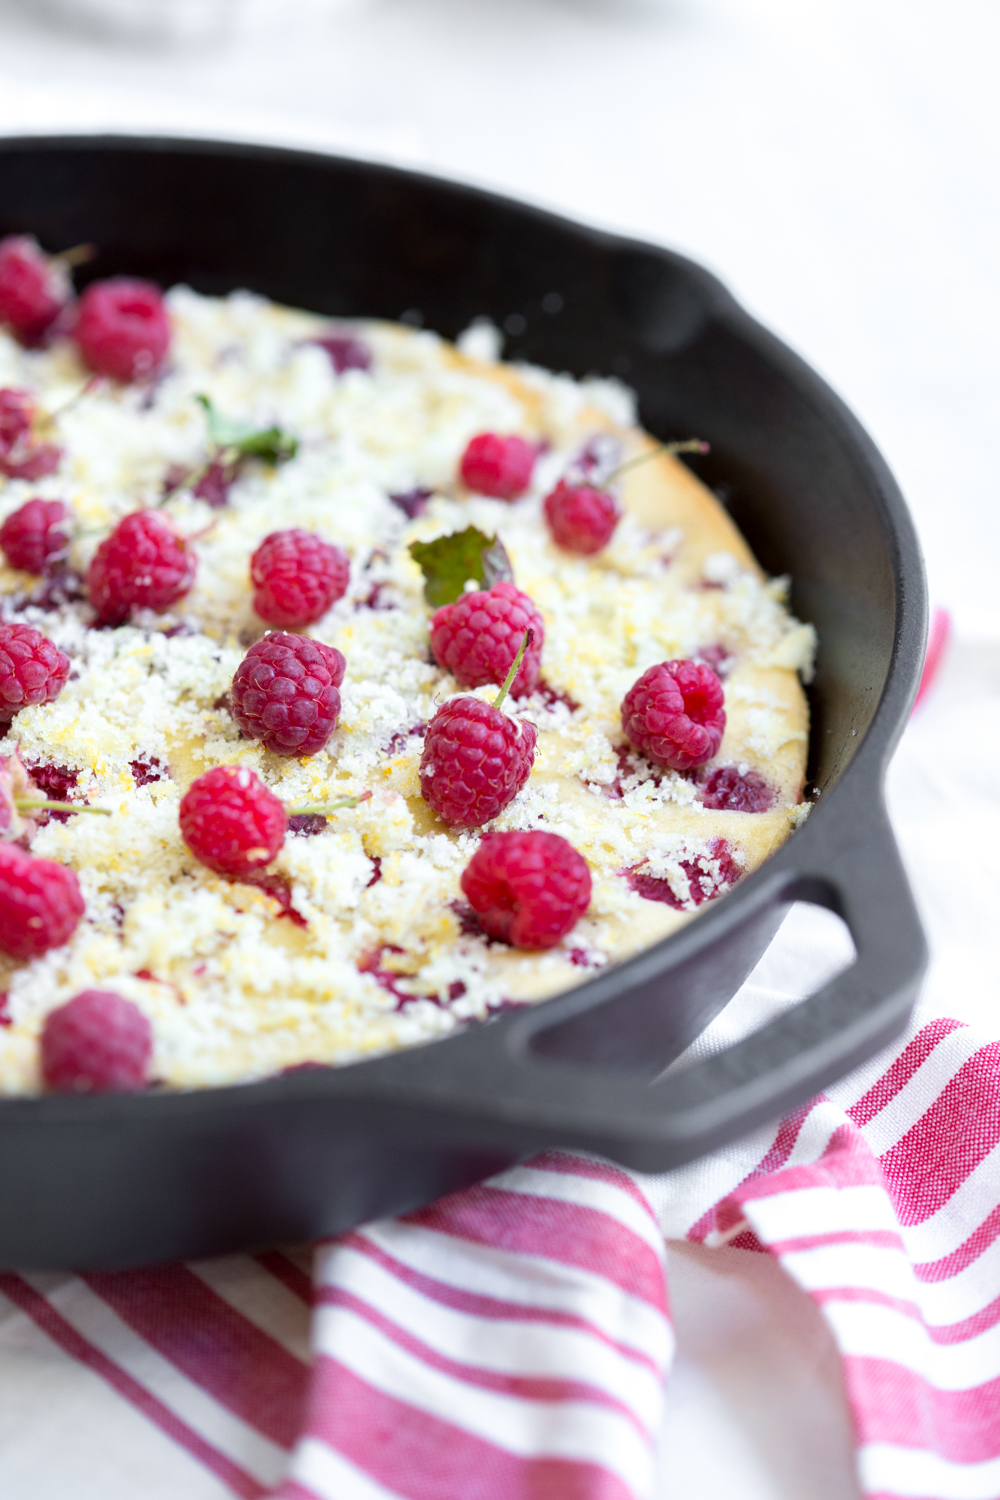 Raspberry Buttermilk Clafoutis with fresh berries.